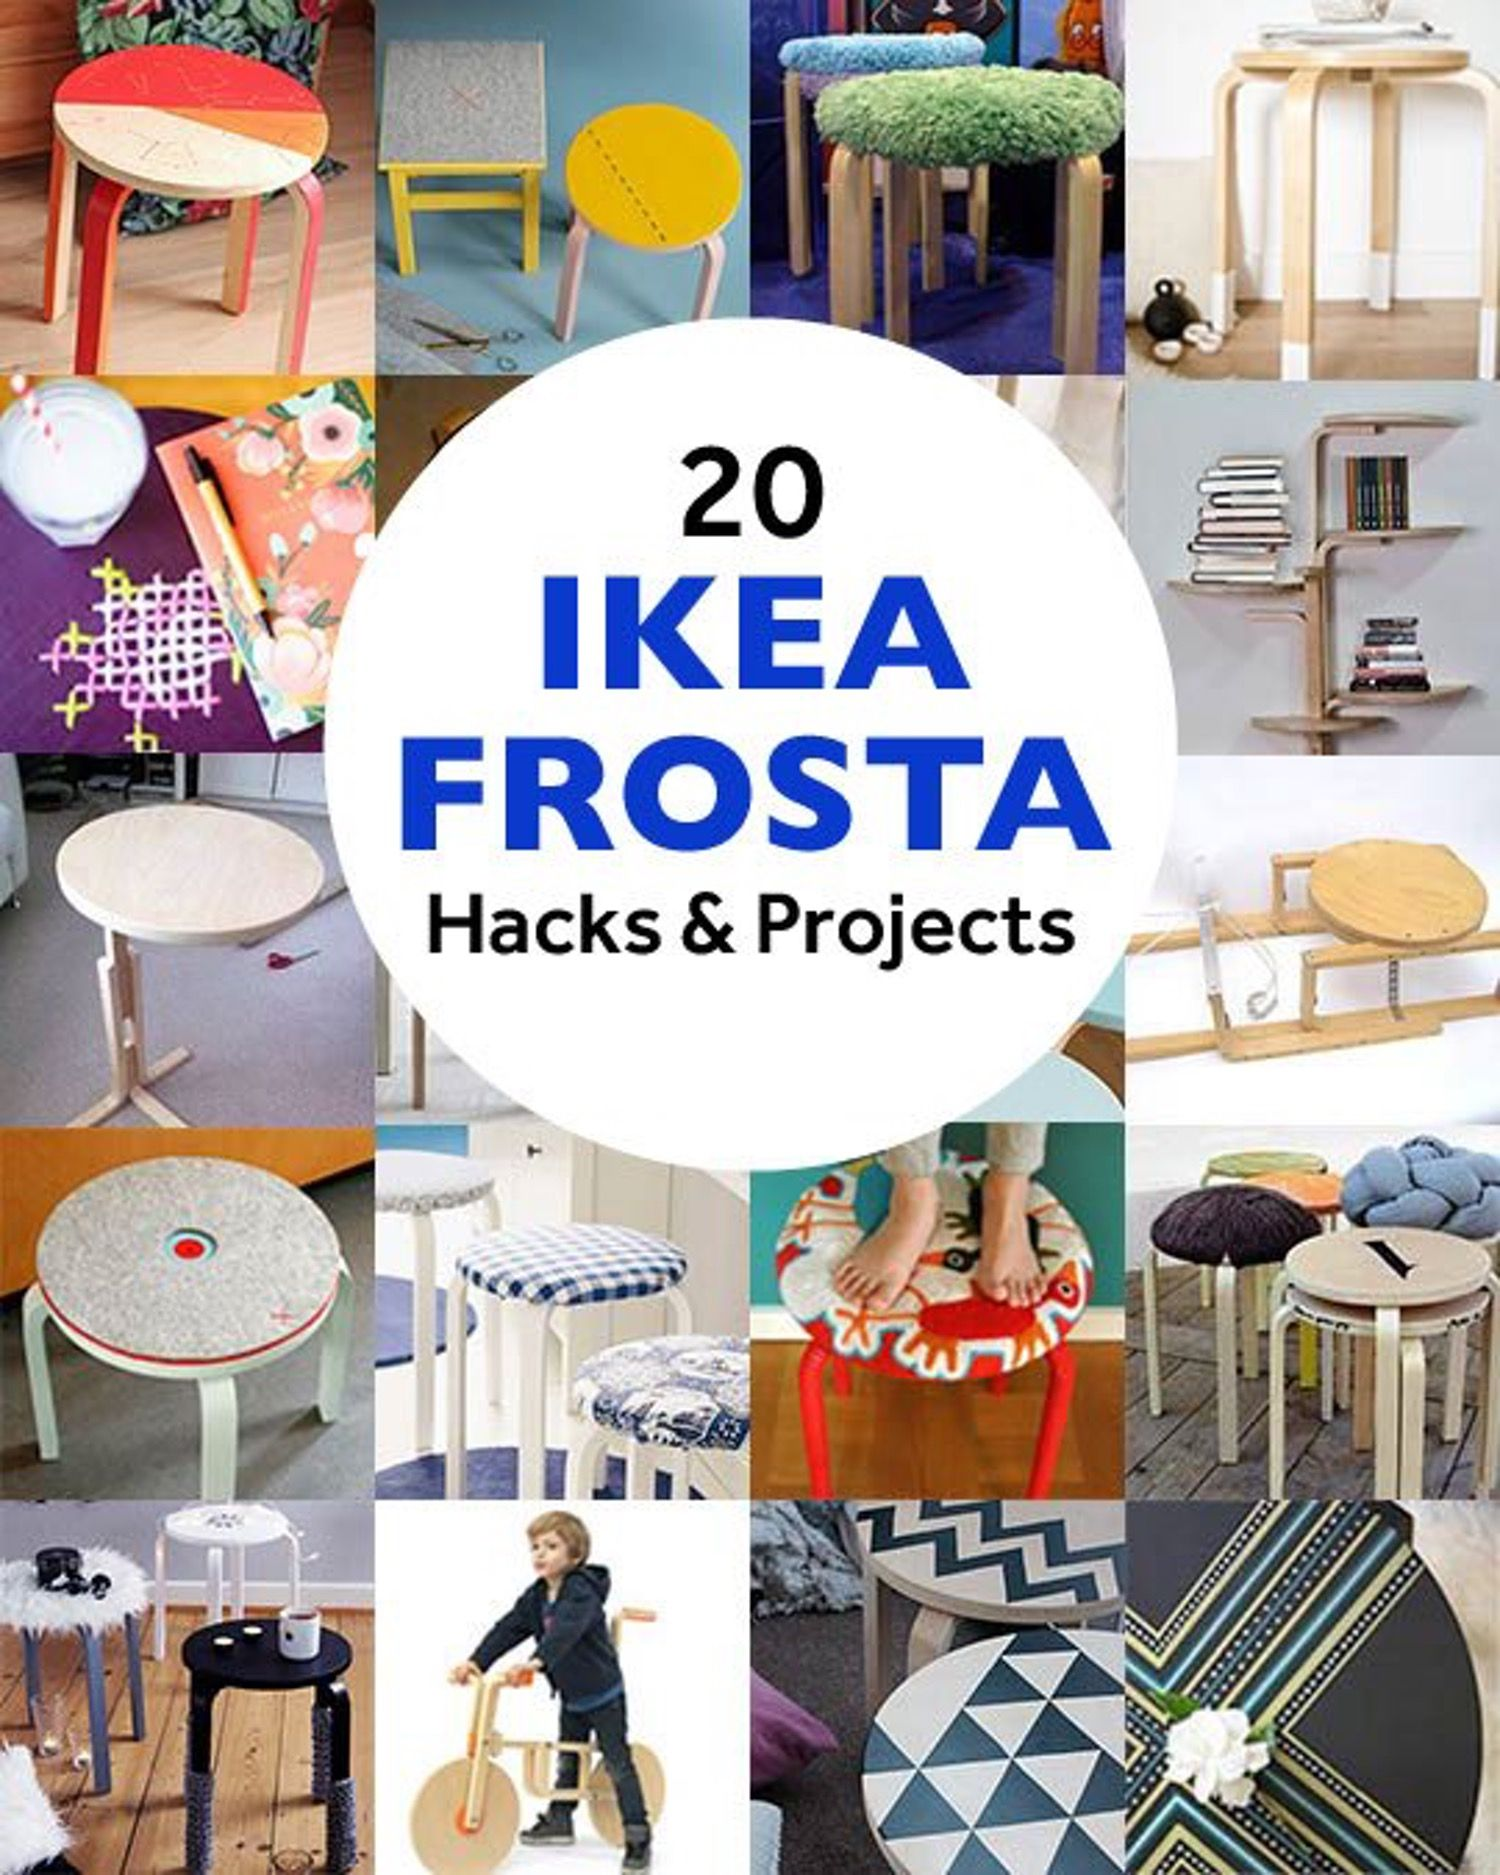 Tabouret Frosta Ikeas Frosta Stool Is Back A Retrospective Of Projects